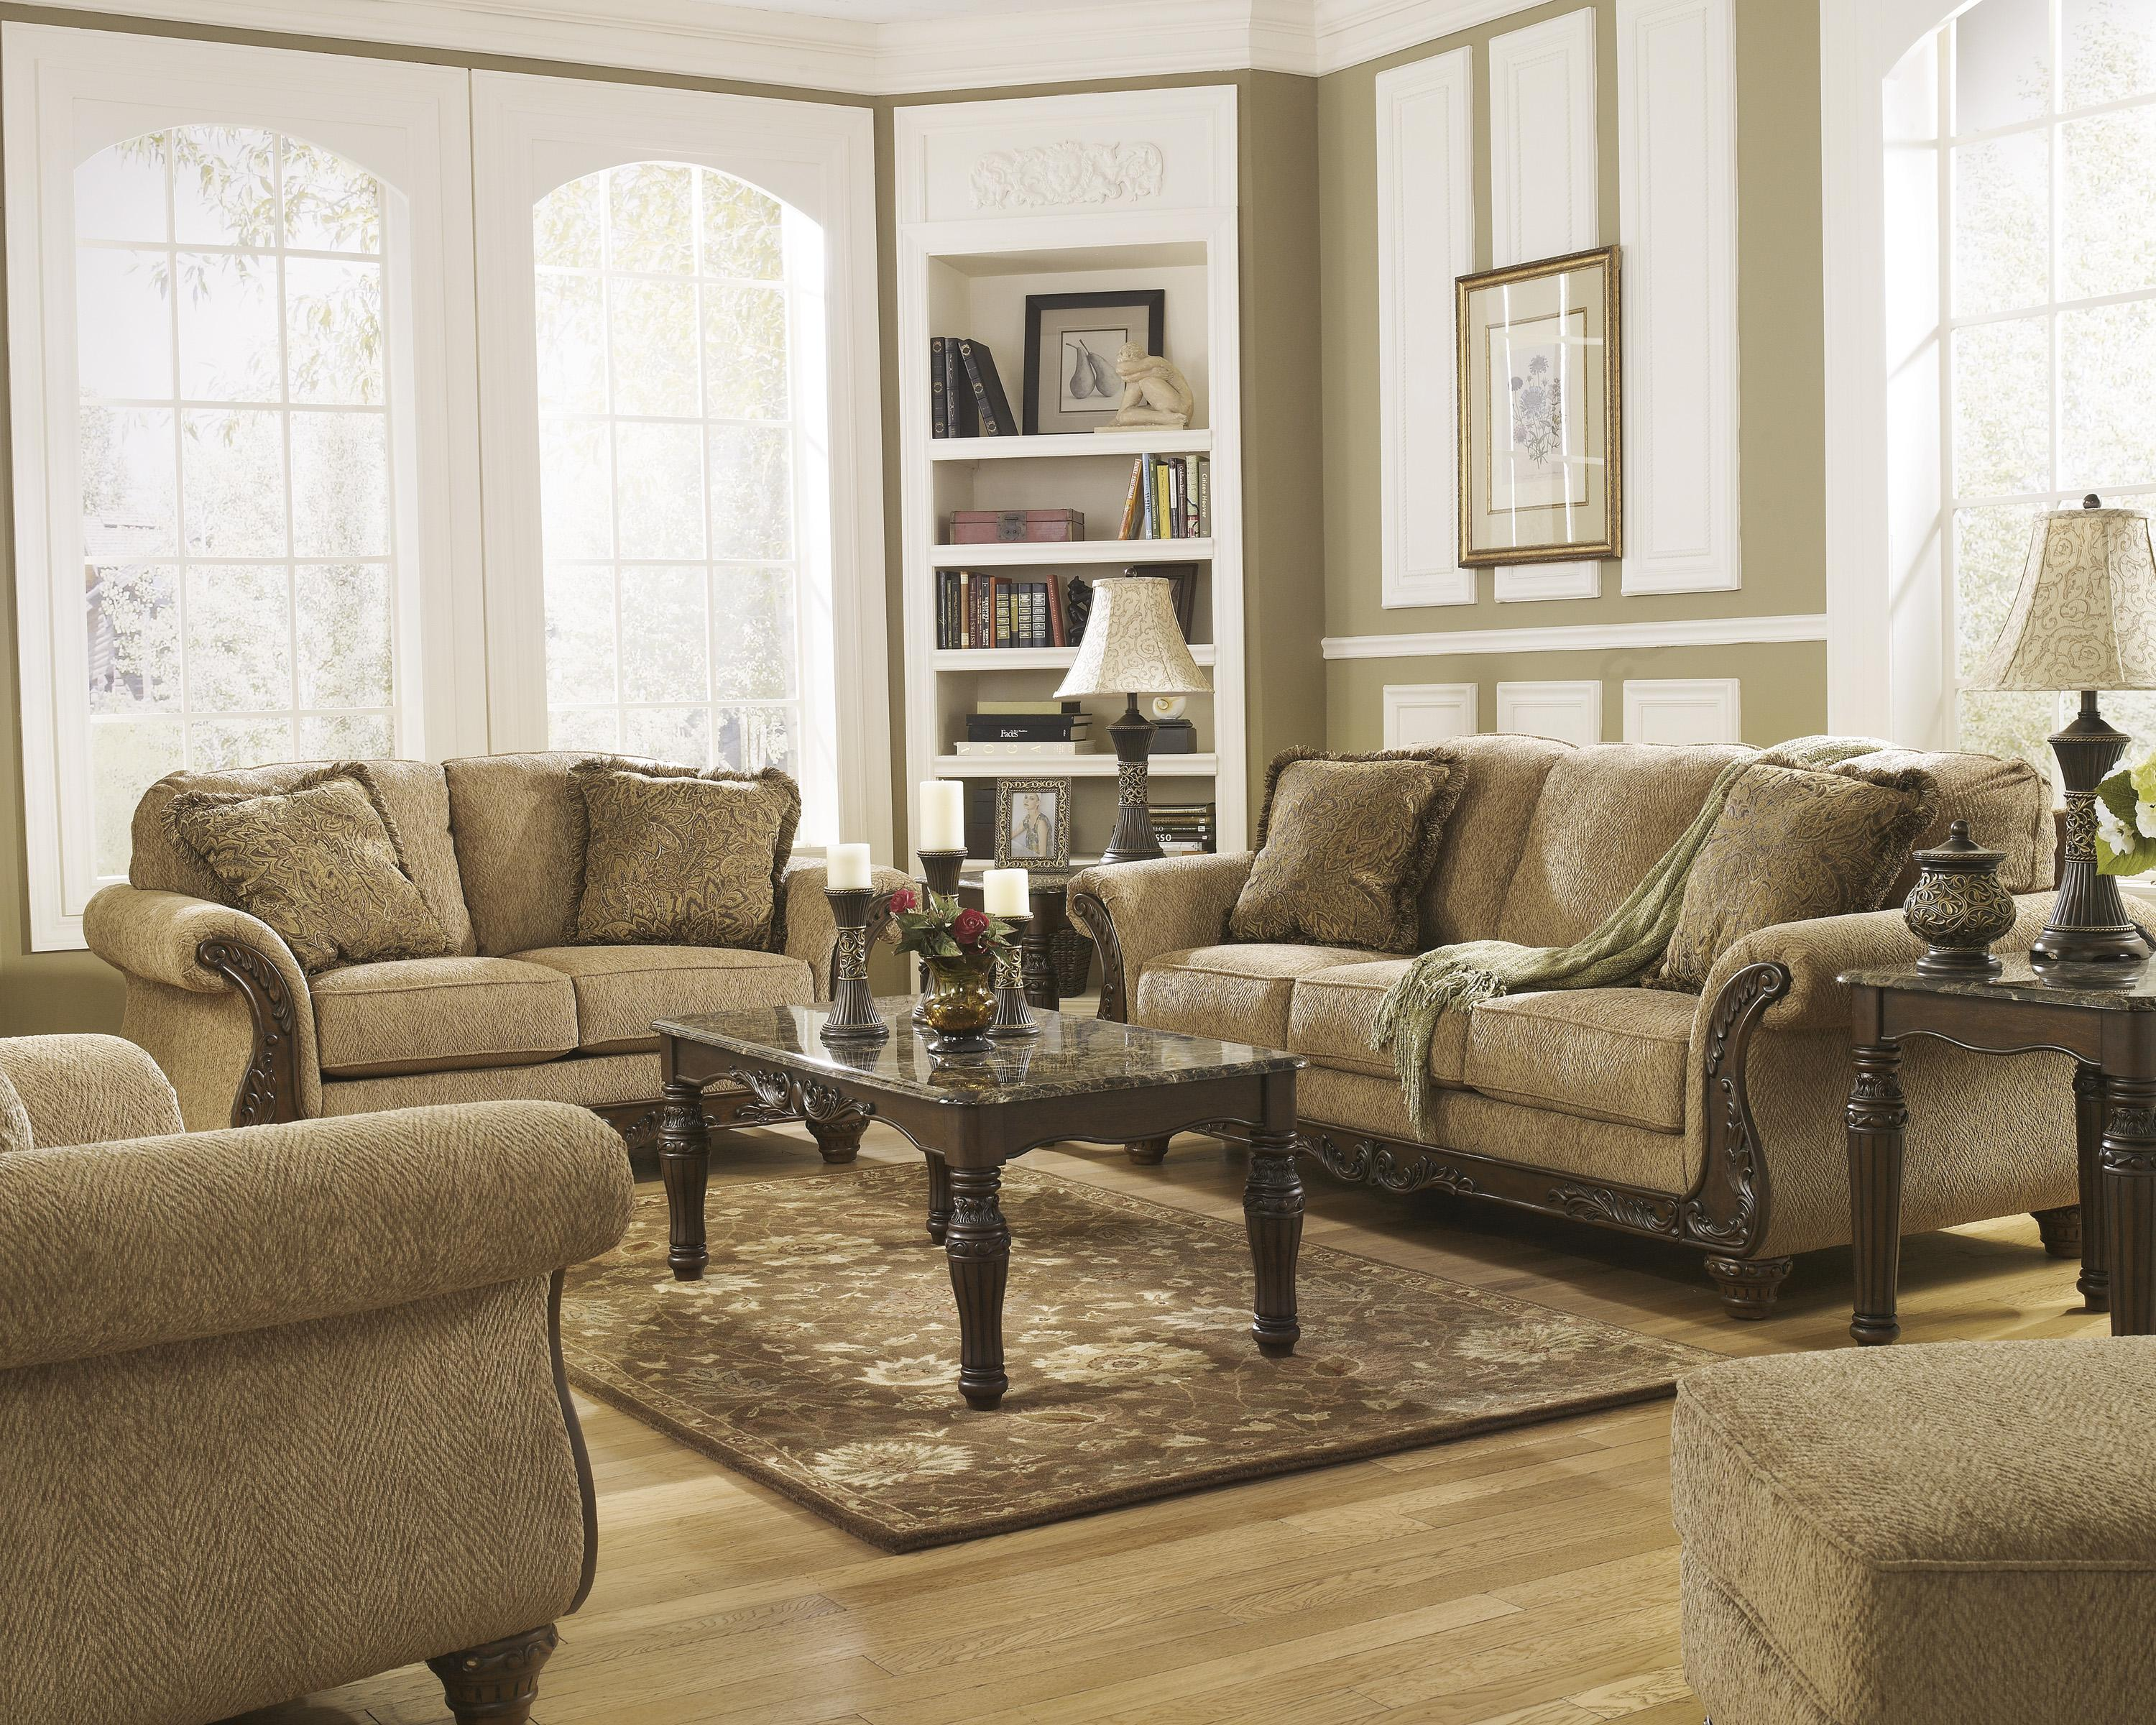 Signature Design by Ashley Cambridge - Amber Stationary Living Room Group - Item Number: 39401 Living Room Group 2